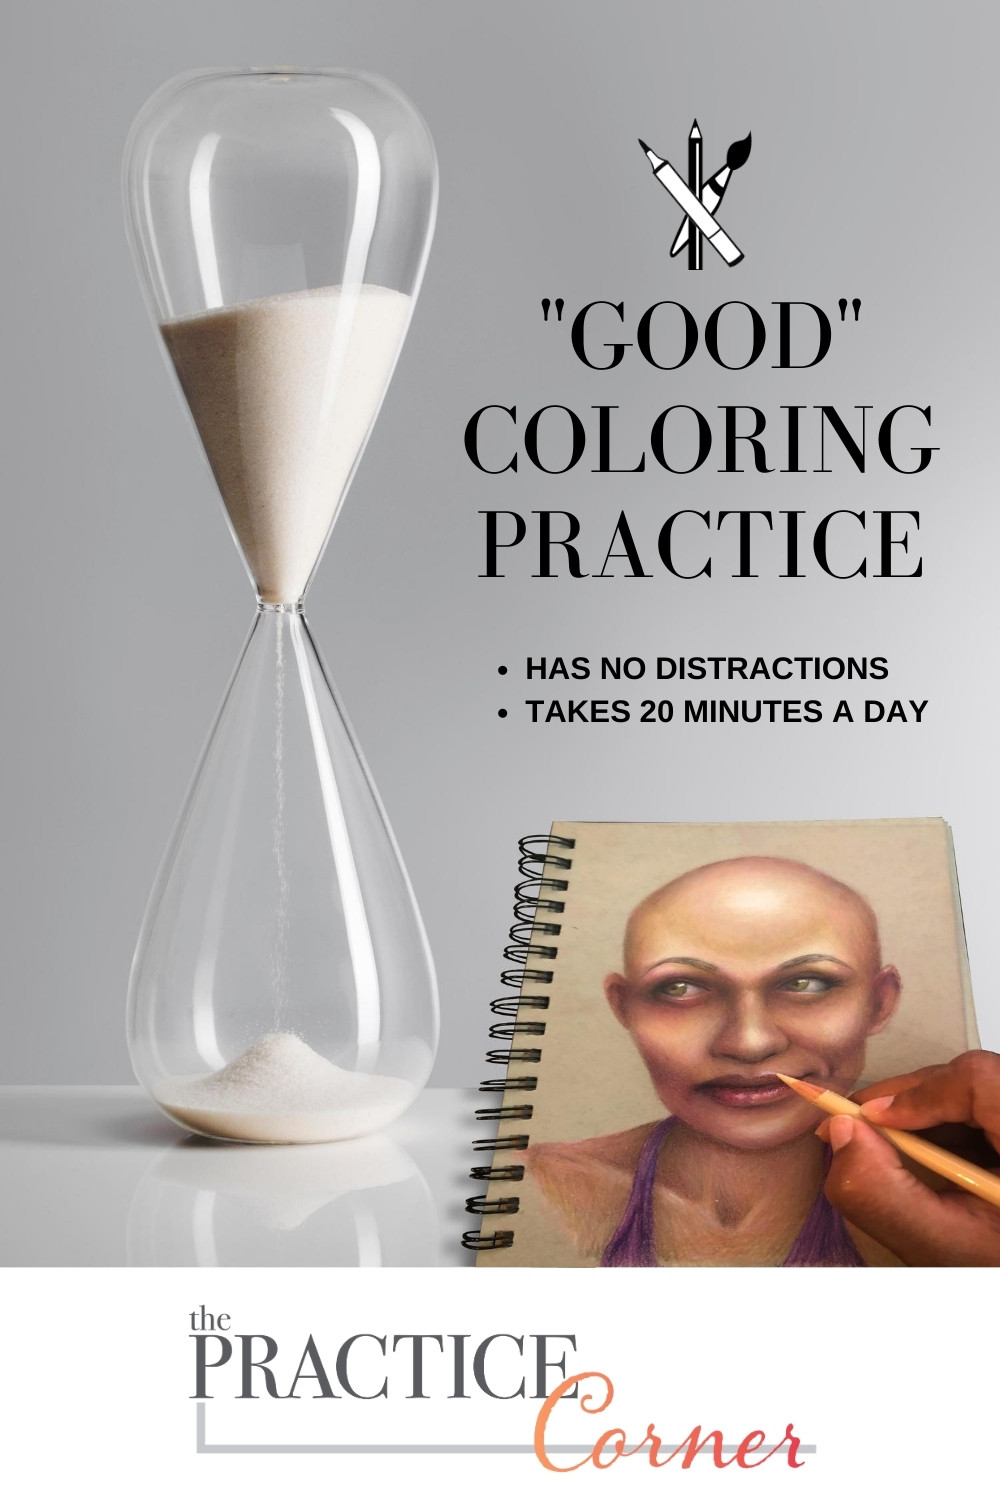 Good coloring practice means no distractions and takes 20 minutes | The Practice Corner | Targeted coloring practice | #coloredpencilpractice #copicmarkerpractice #coloringtechniques